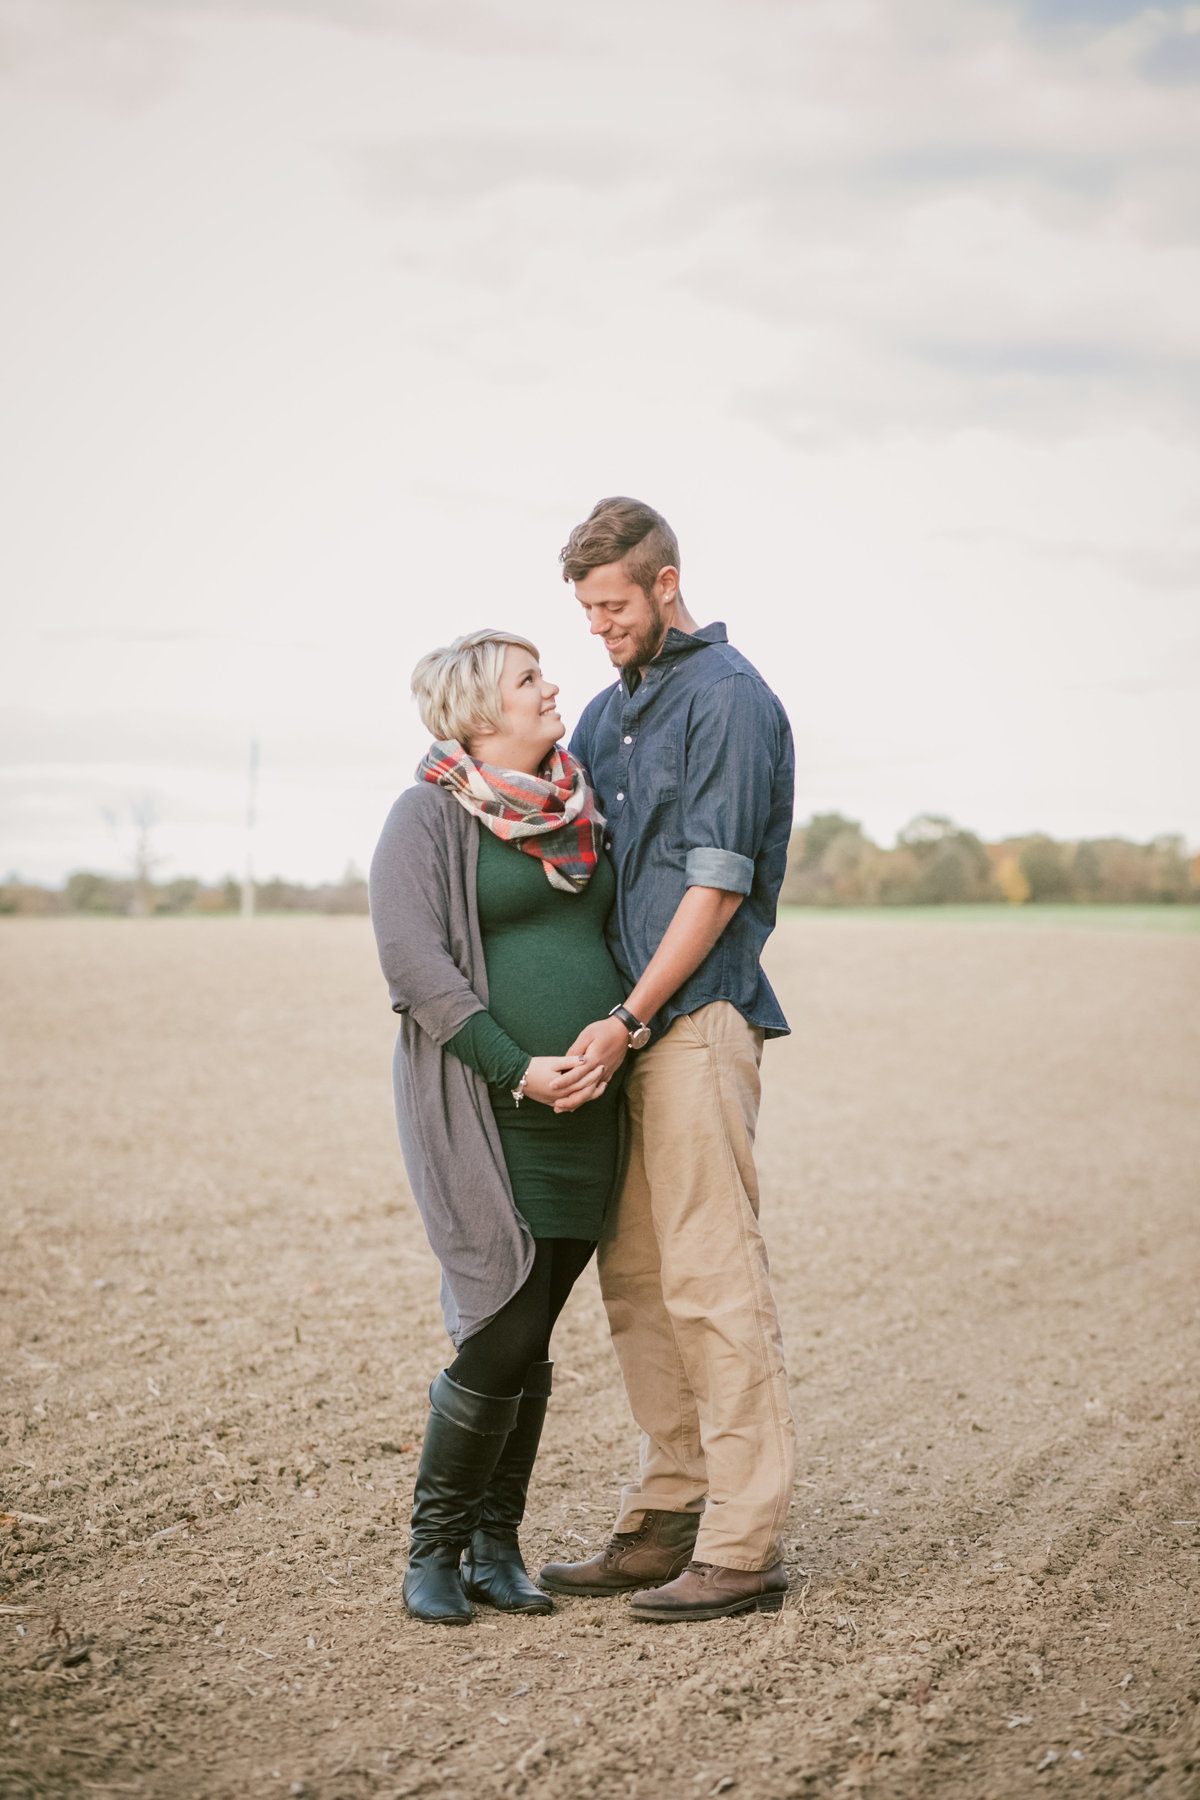 Meghan+Russ-Maternity-Contagious-design-photo-HR-0027